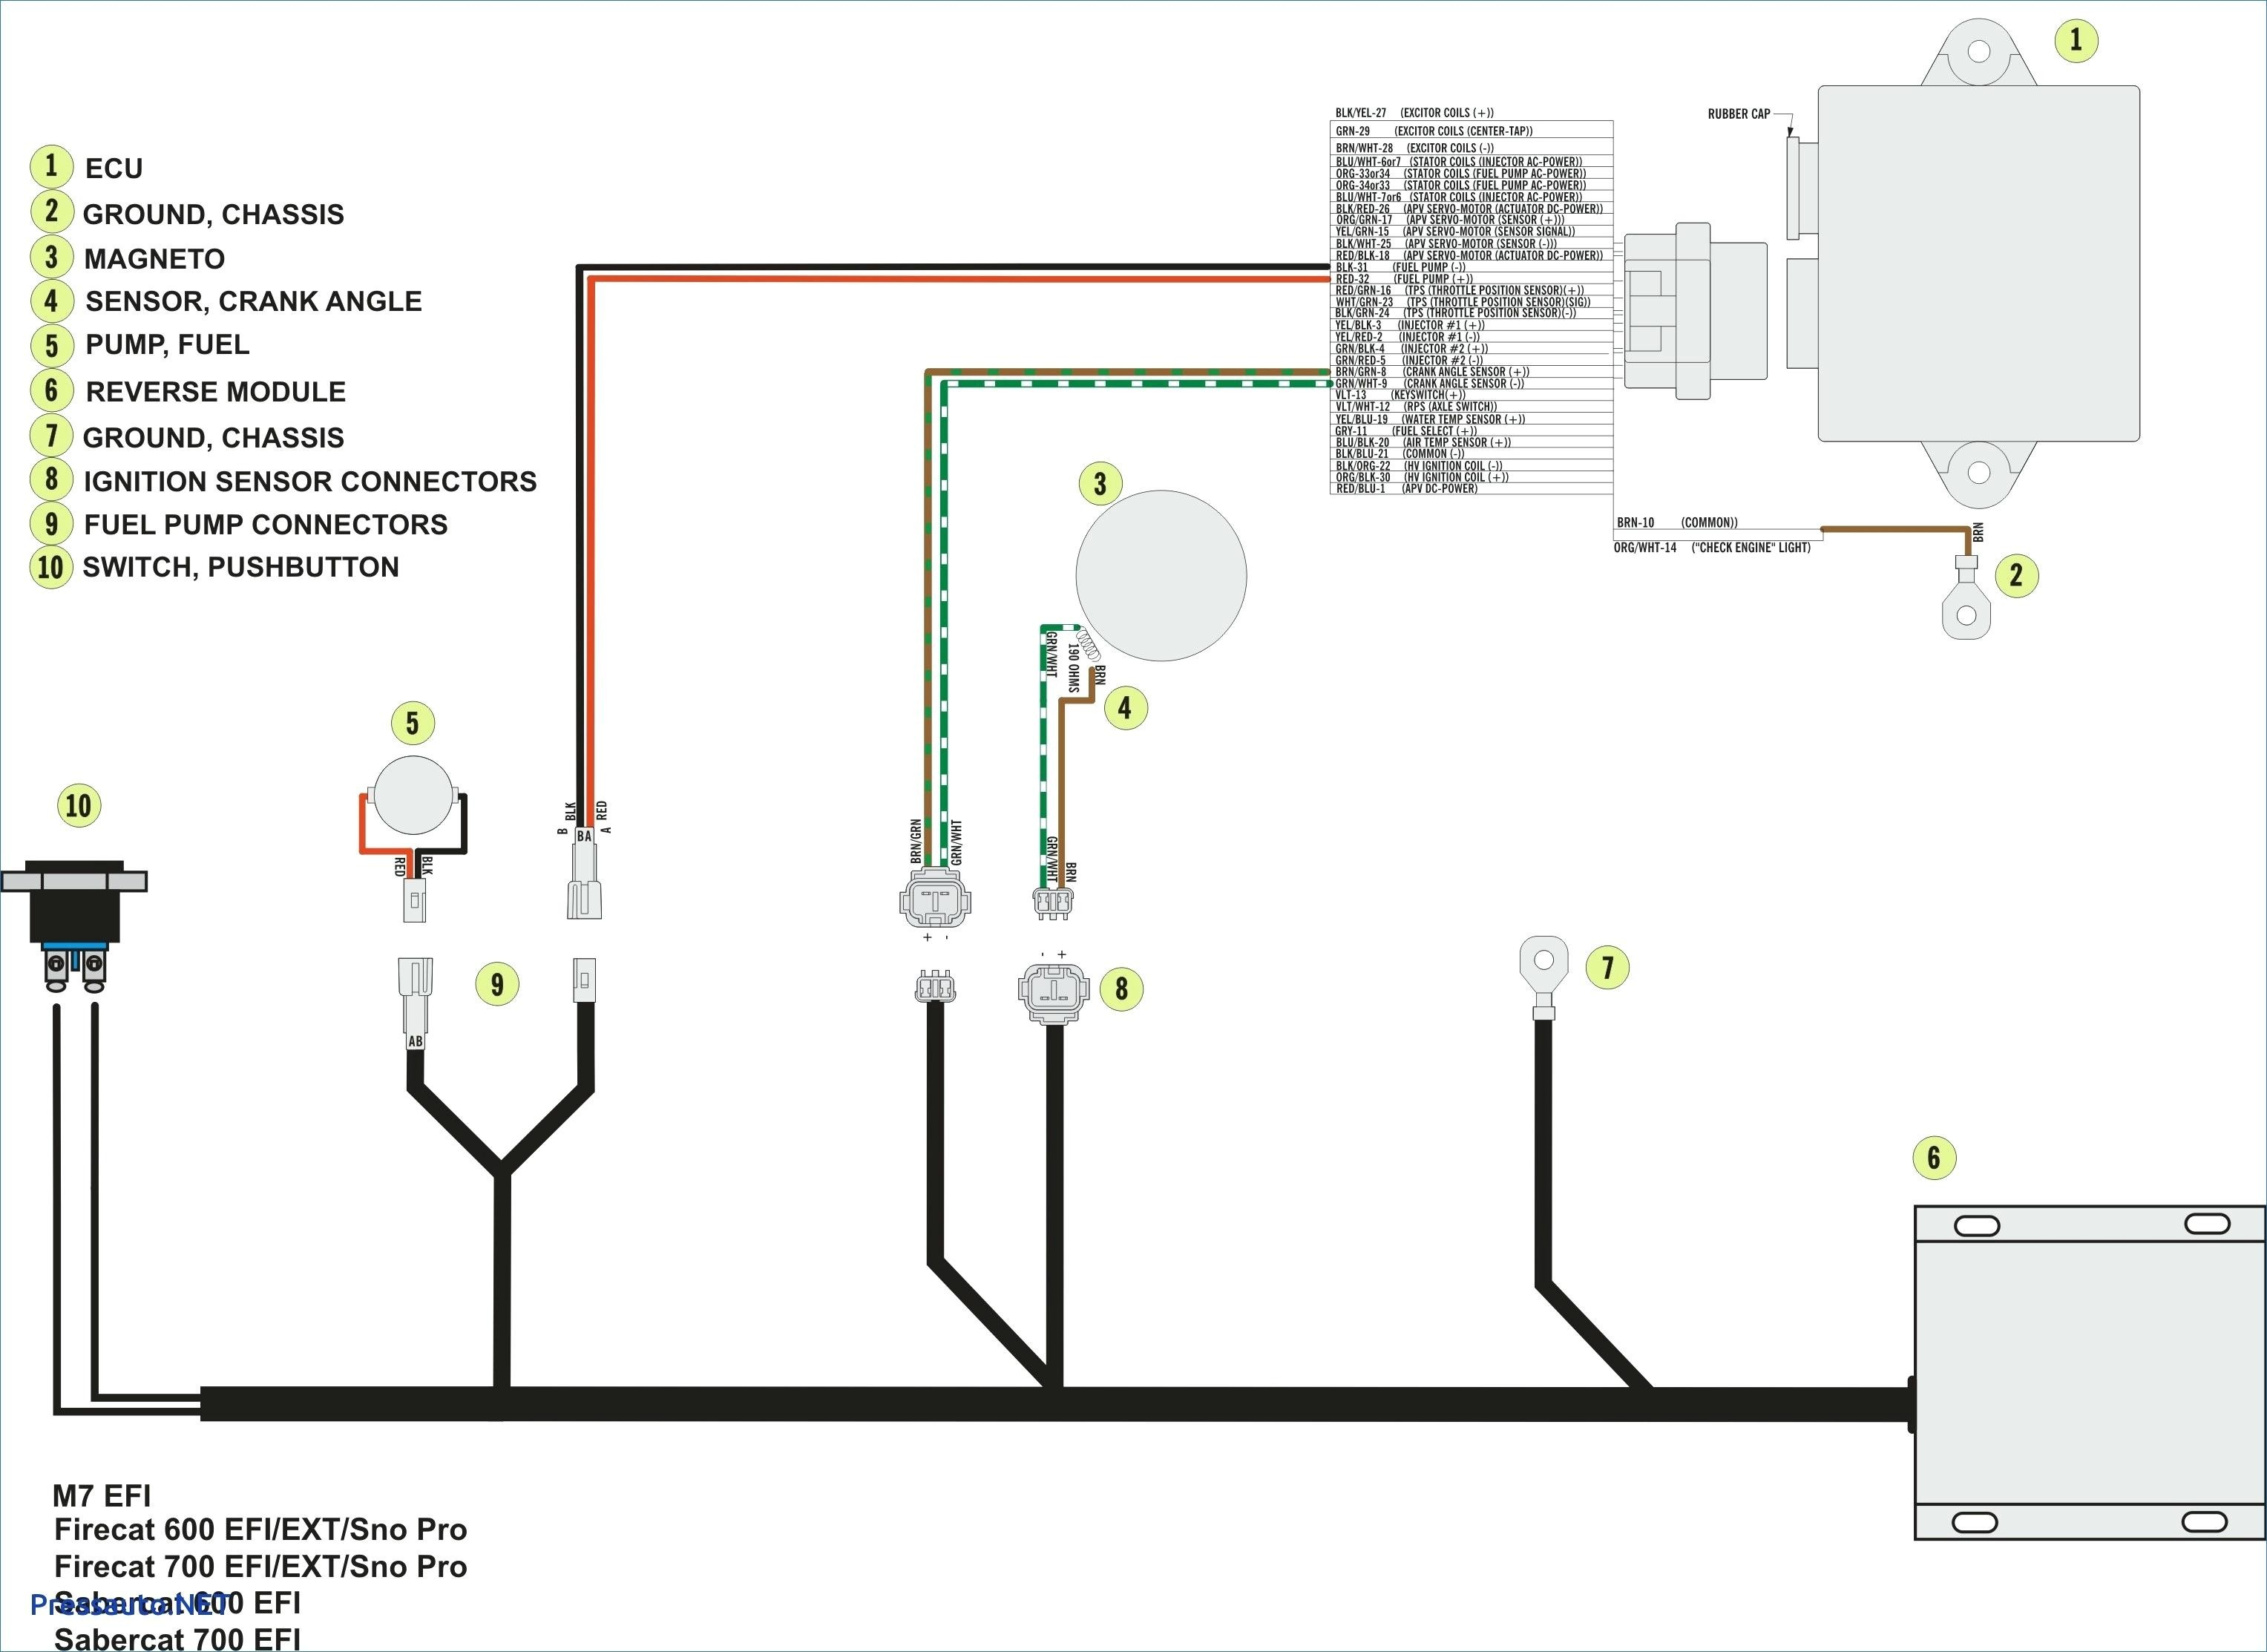 How to Wire A Transformer Diagram Transformer Wiring Diagram Current Primary and Secondary Ponents Of How to Wire A Transformer Diagram